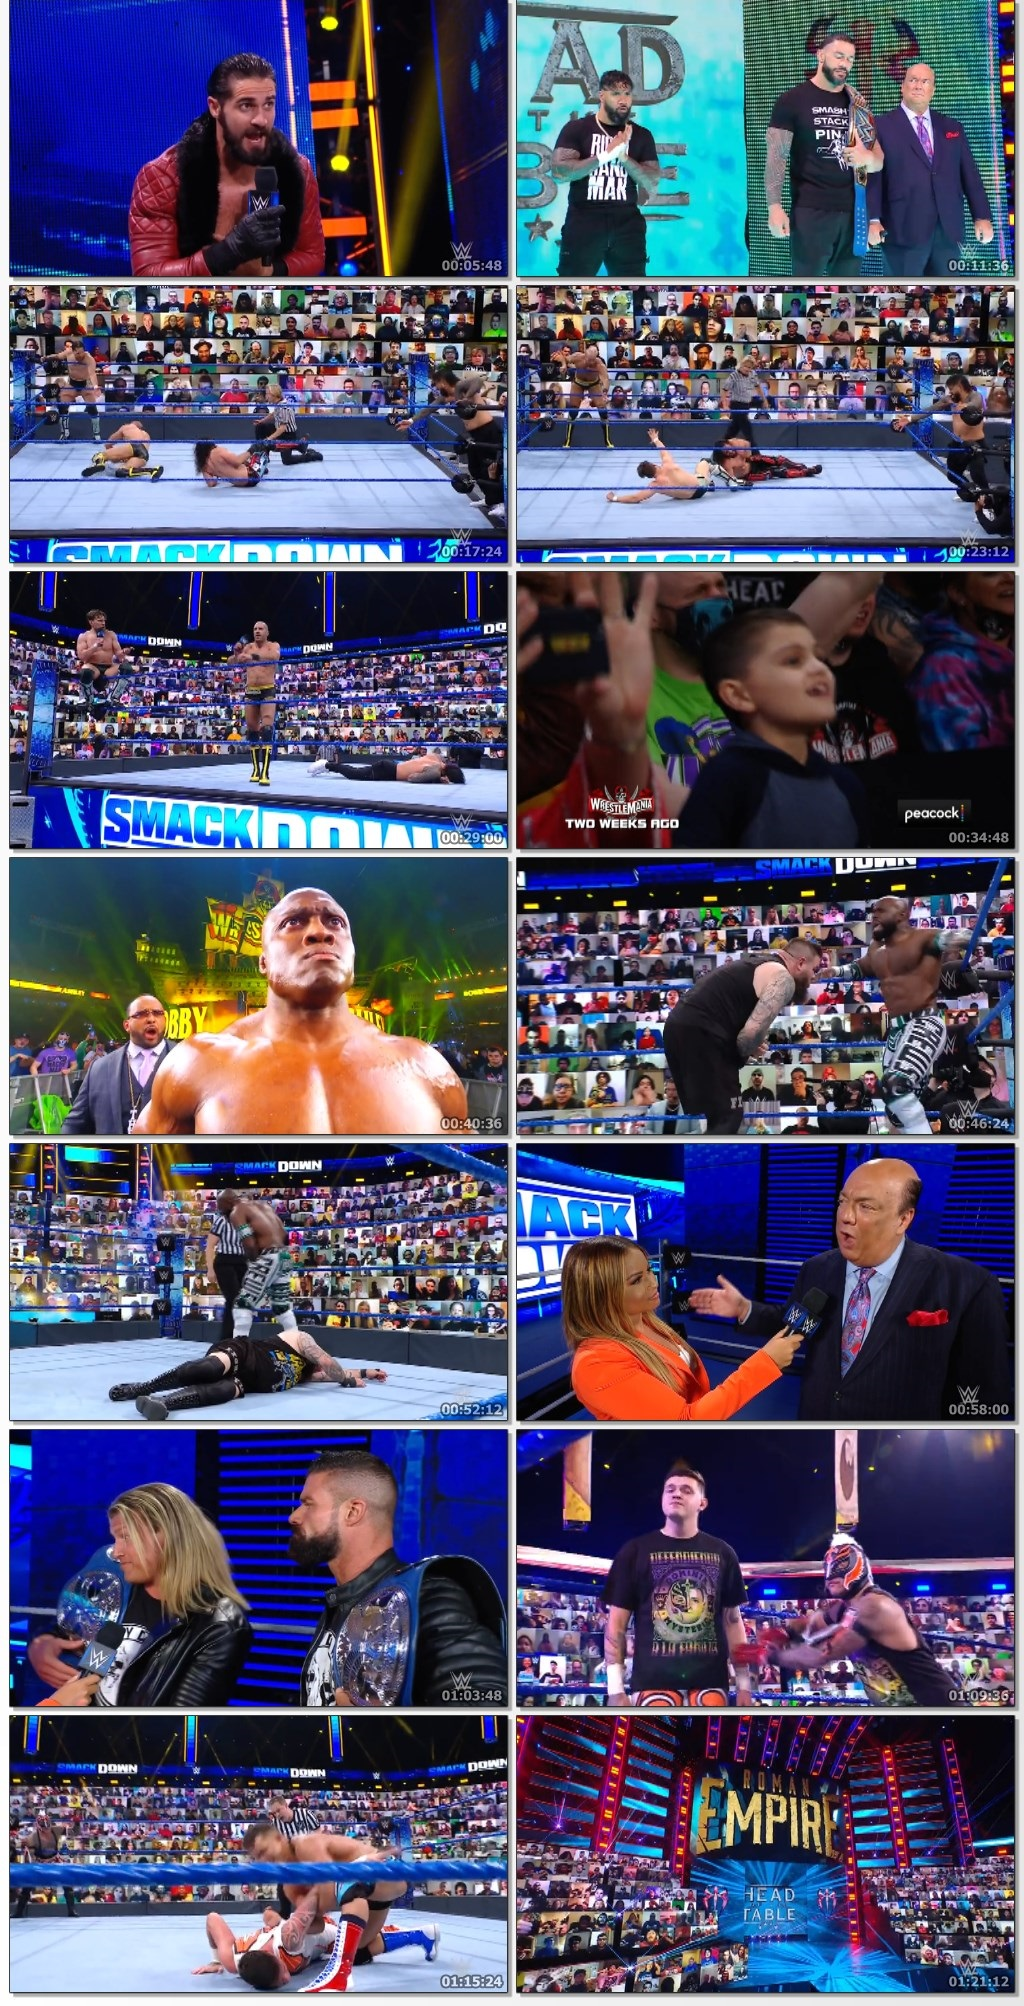 WWE-Friday-Night-Smack-Down-23th-April-2021-www-1kmovies-cyou-English-720p-HDRip-1-GB-mkv-thumbs